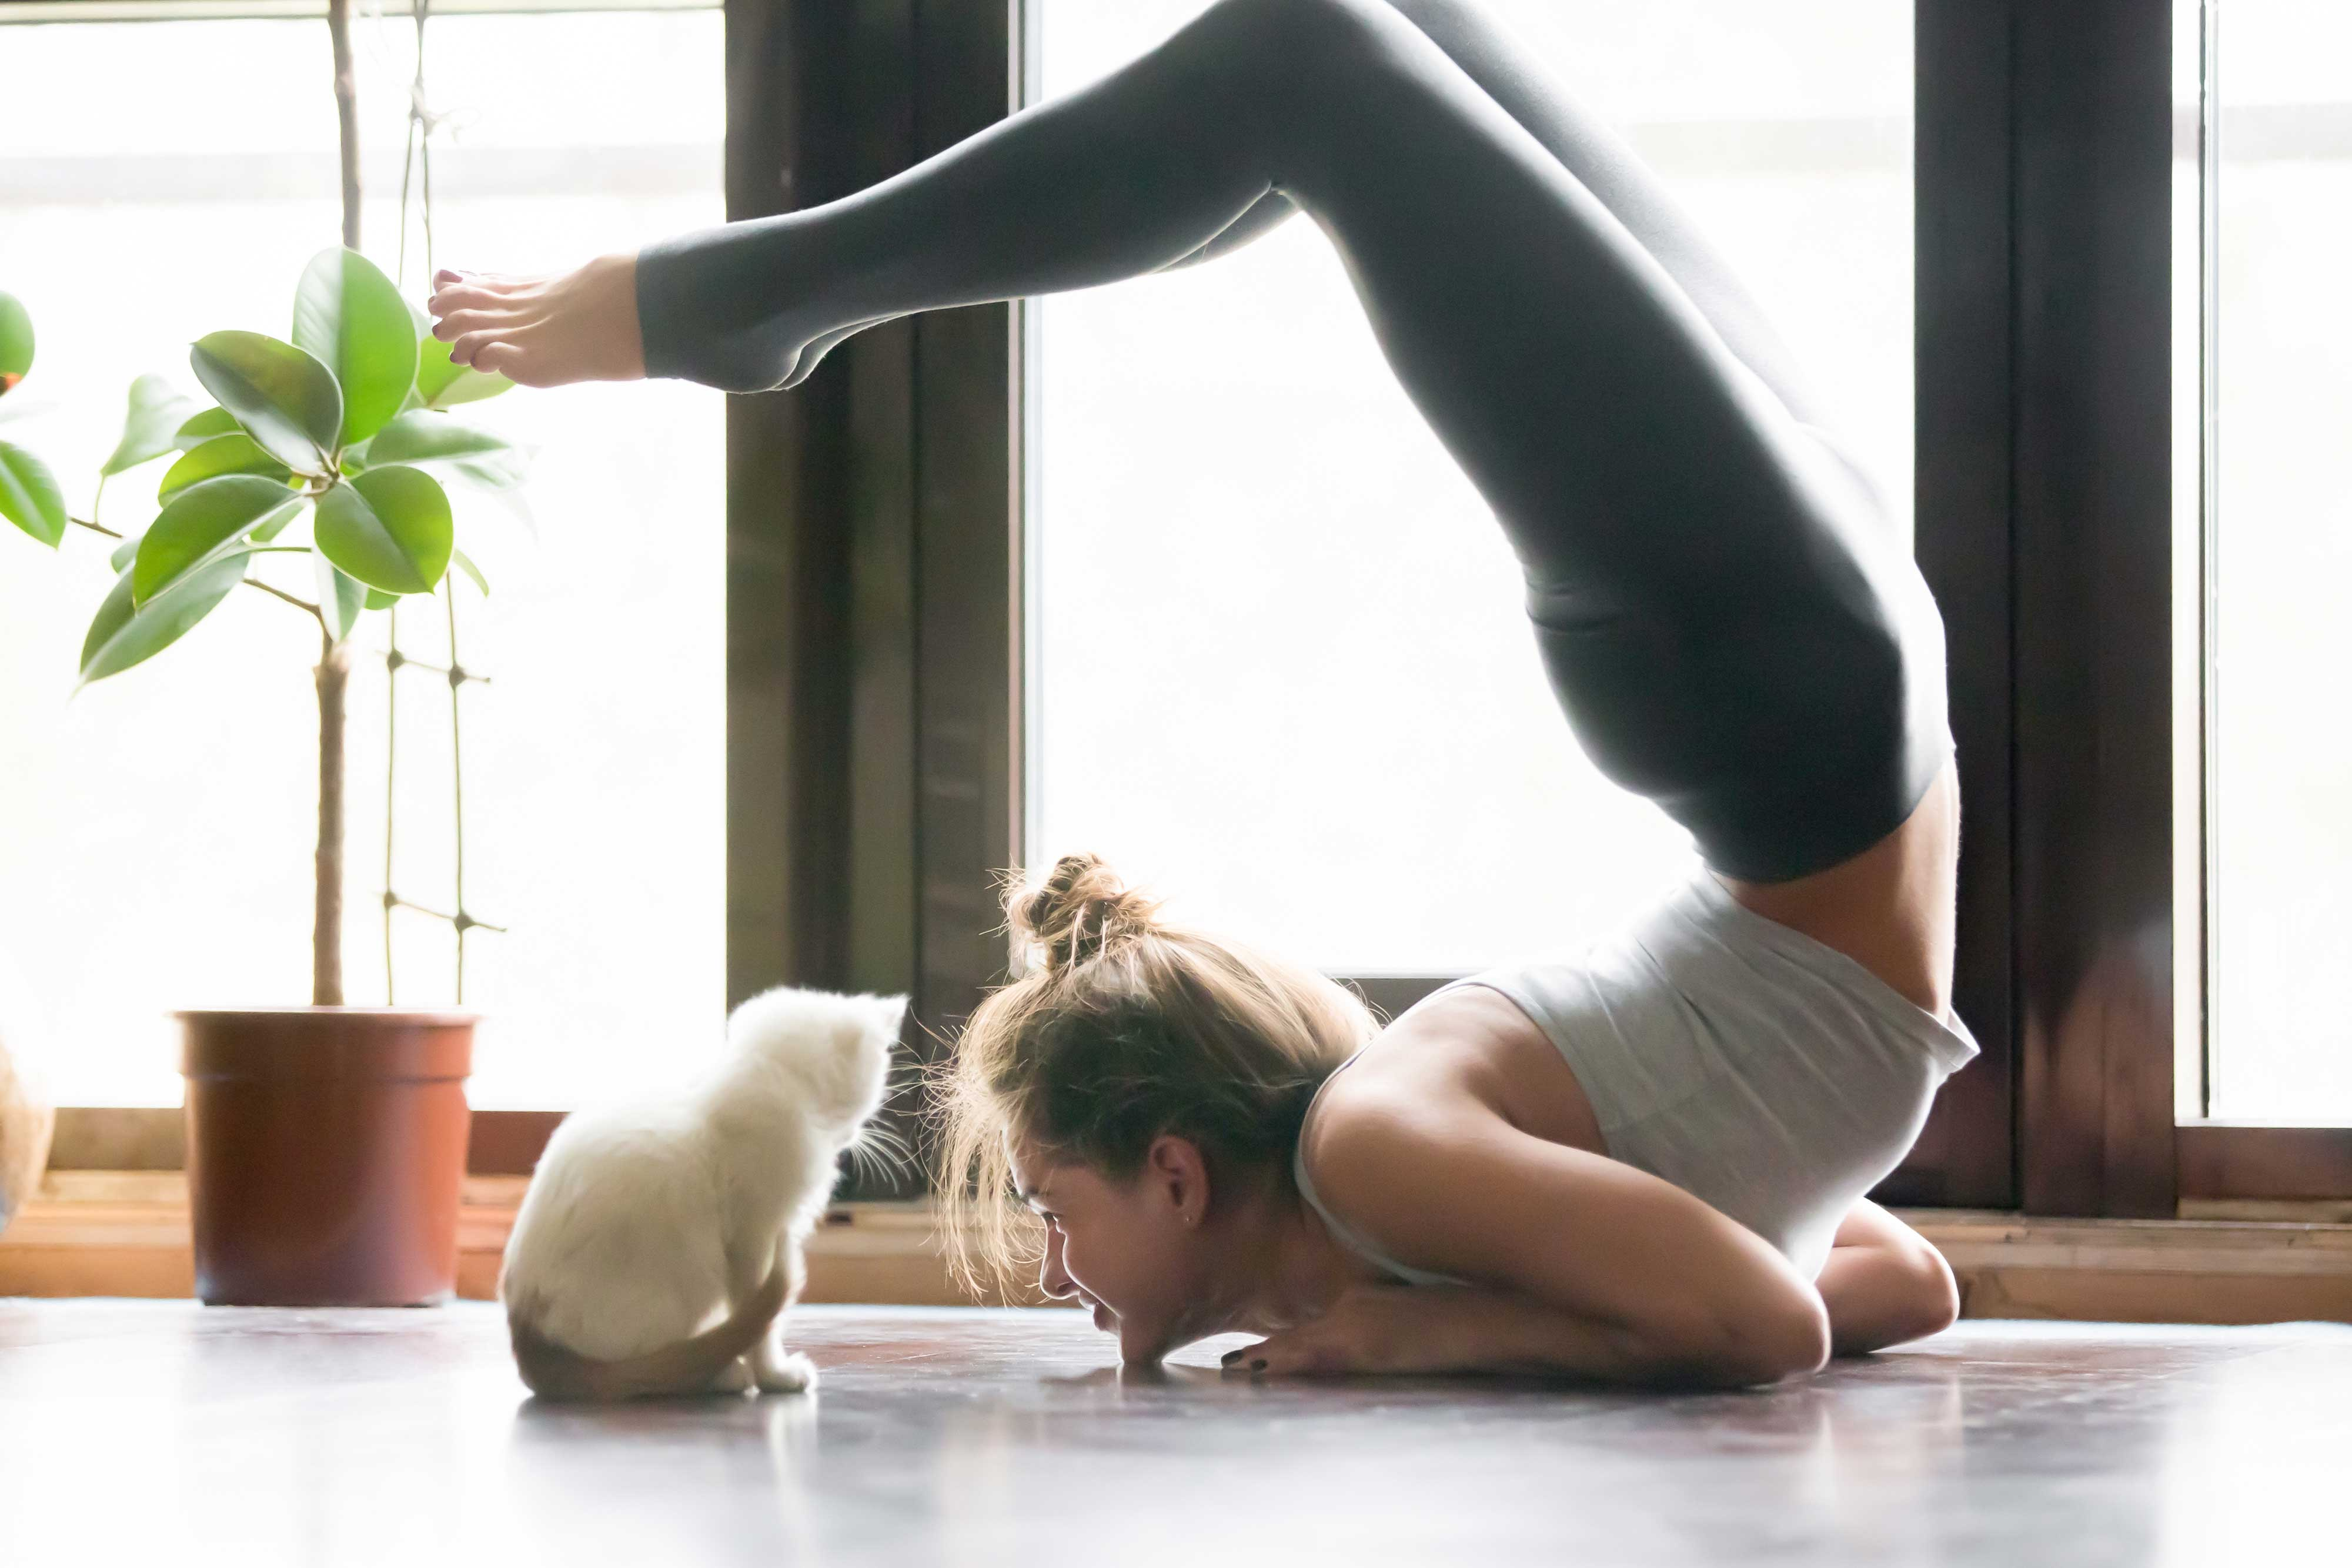 Women Practicing Yoga Indoors With Her Cat